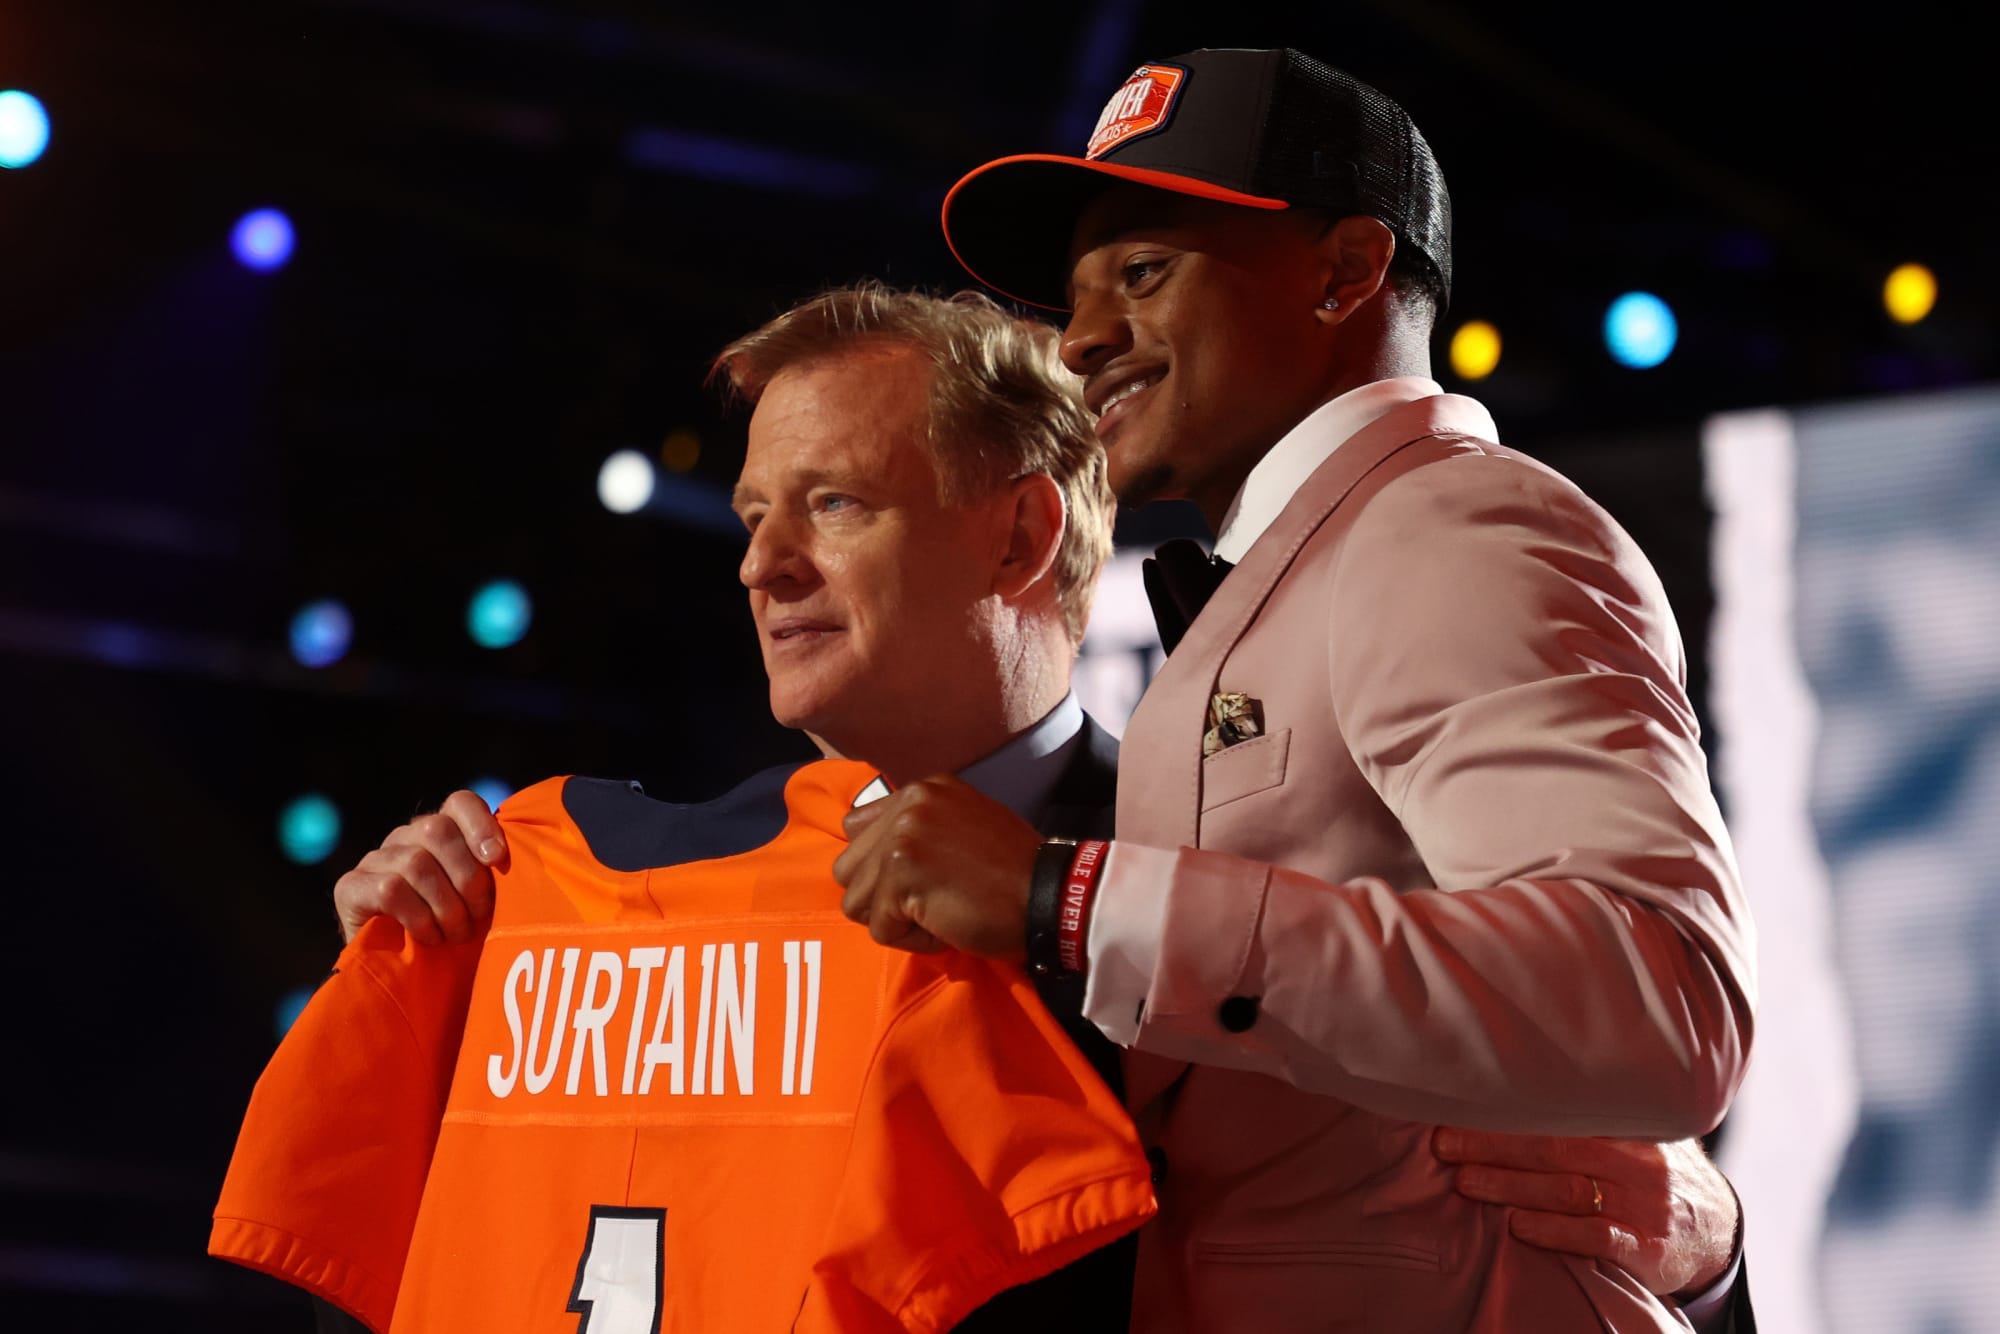 Denver Broncos made a colossal mistake with the 9th pick in 2021 NFL Draft